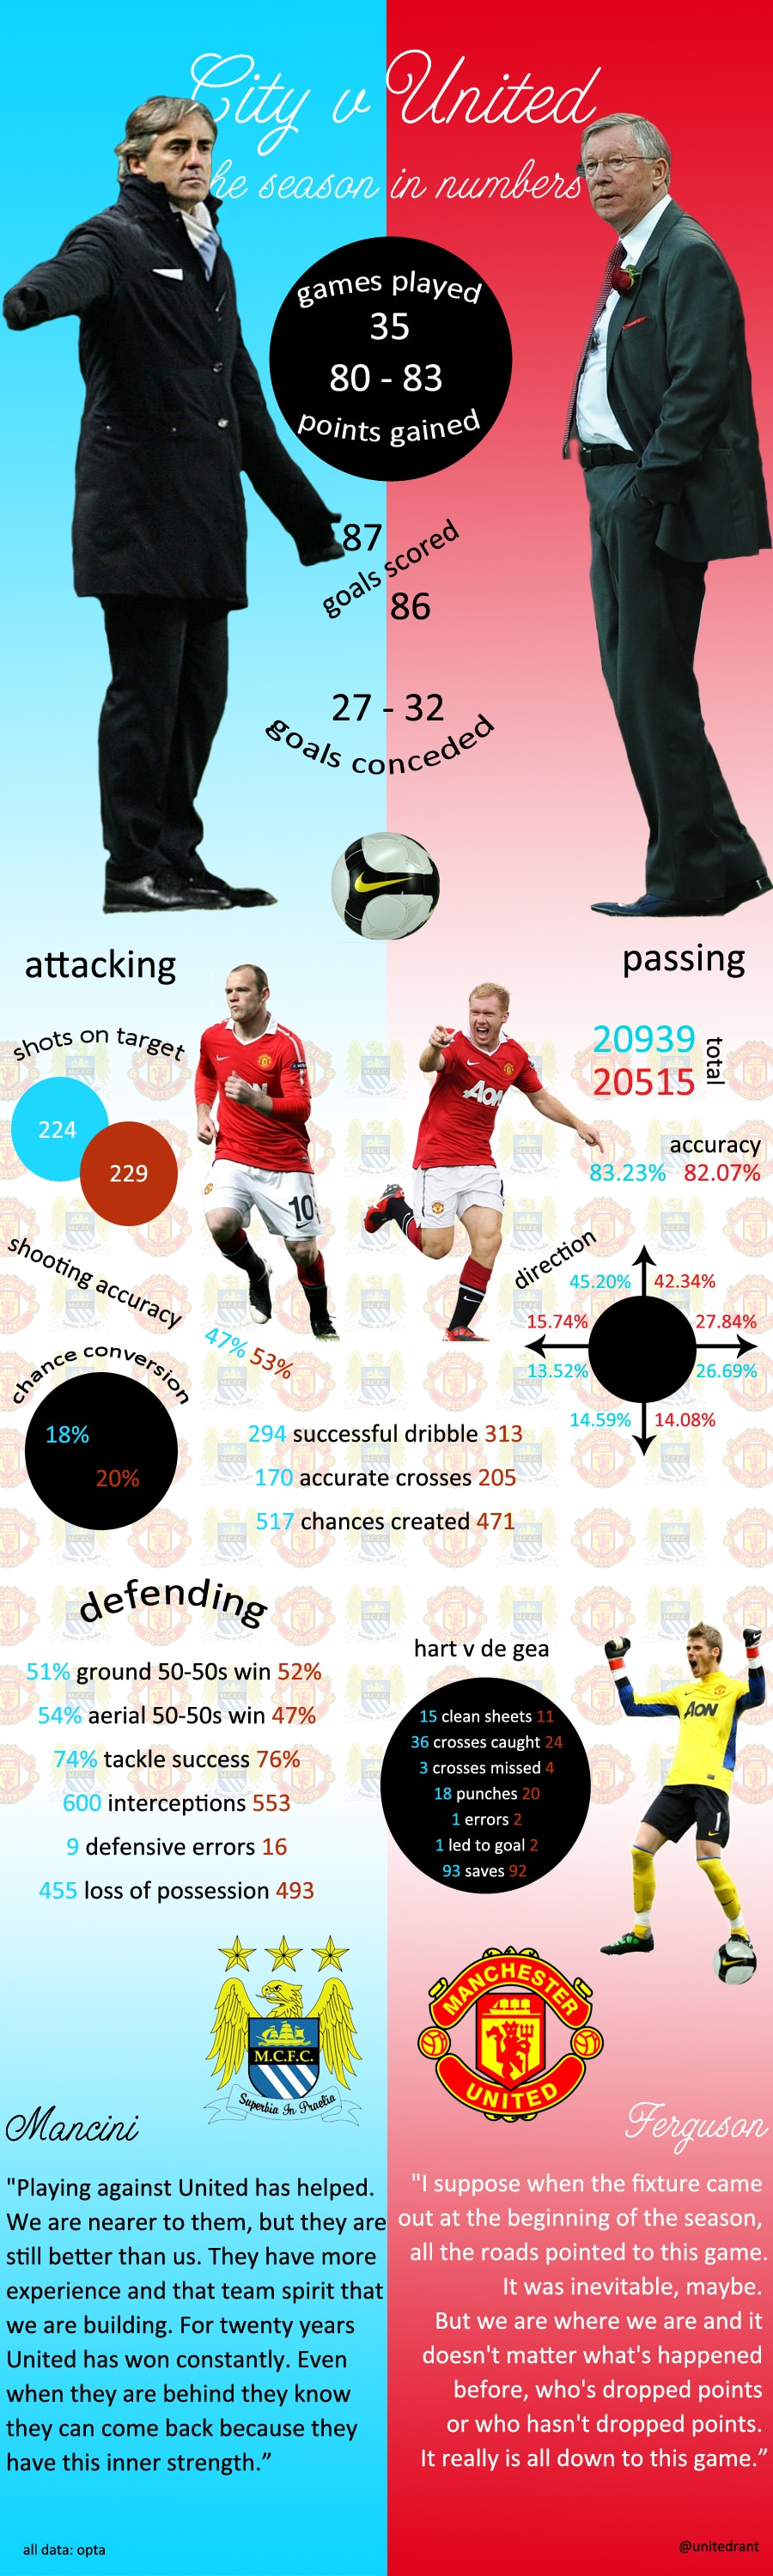 City v United: the season in numbers